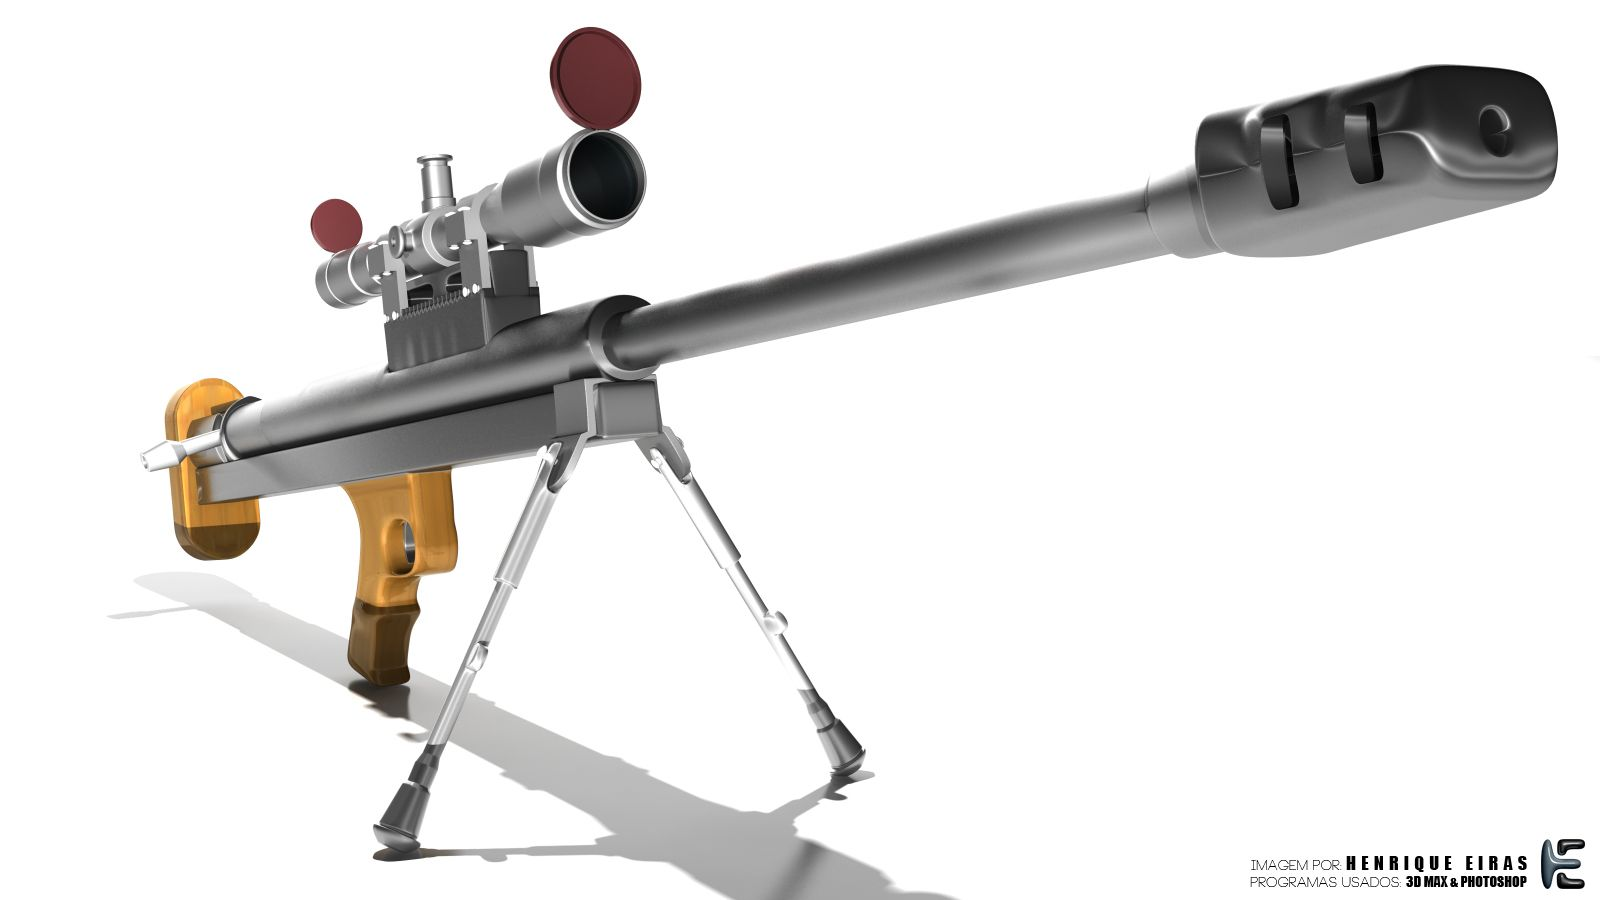 Grizzly 50  cal  Sniper Rifle   right to bear arms   Hunting rifles